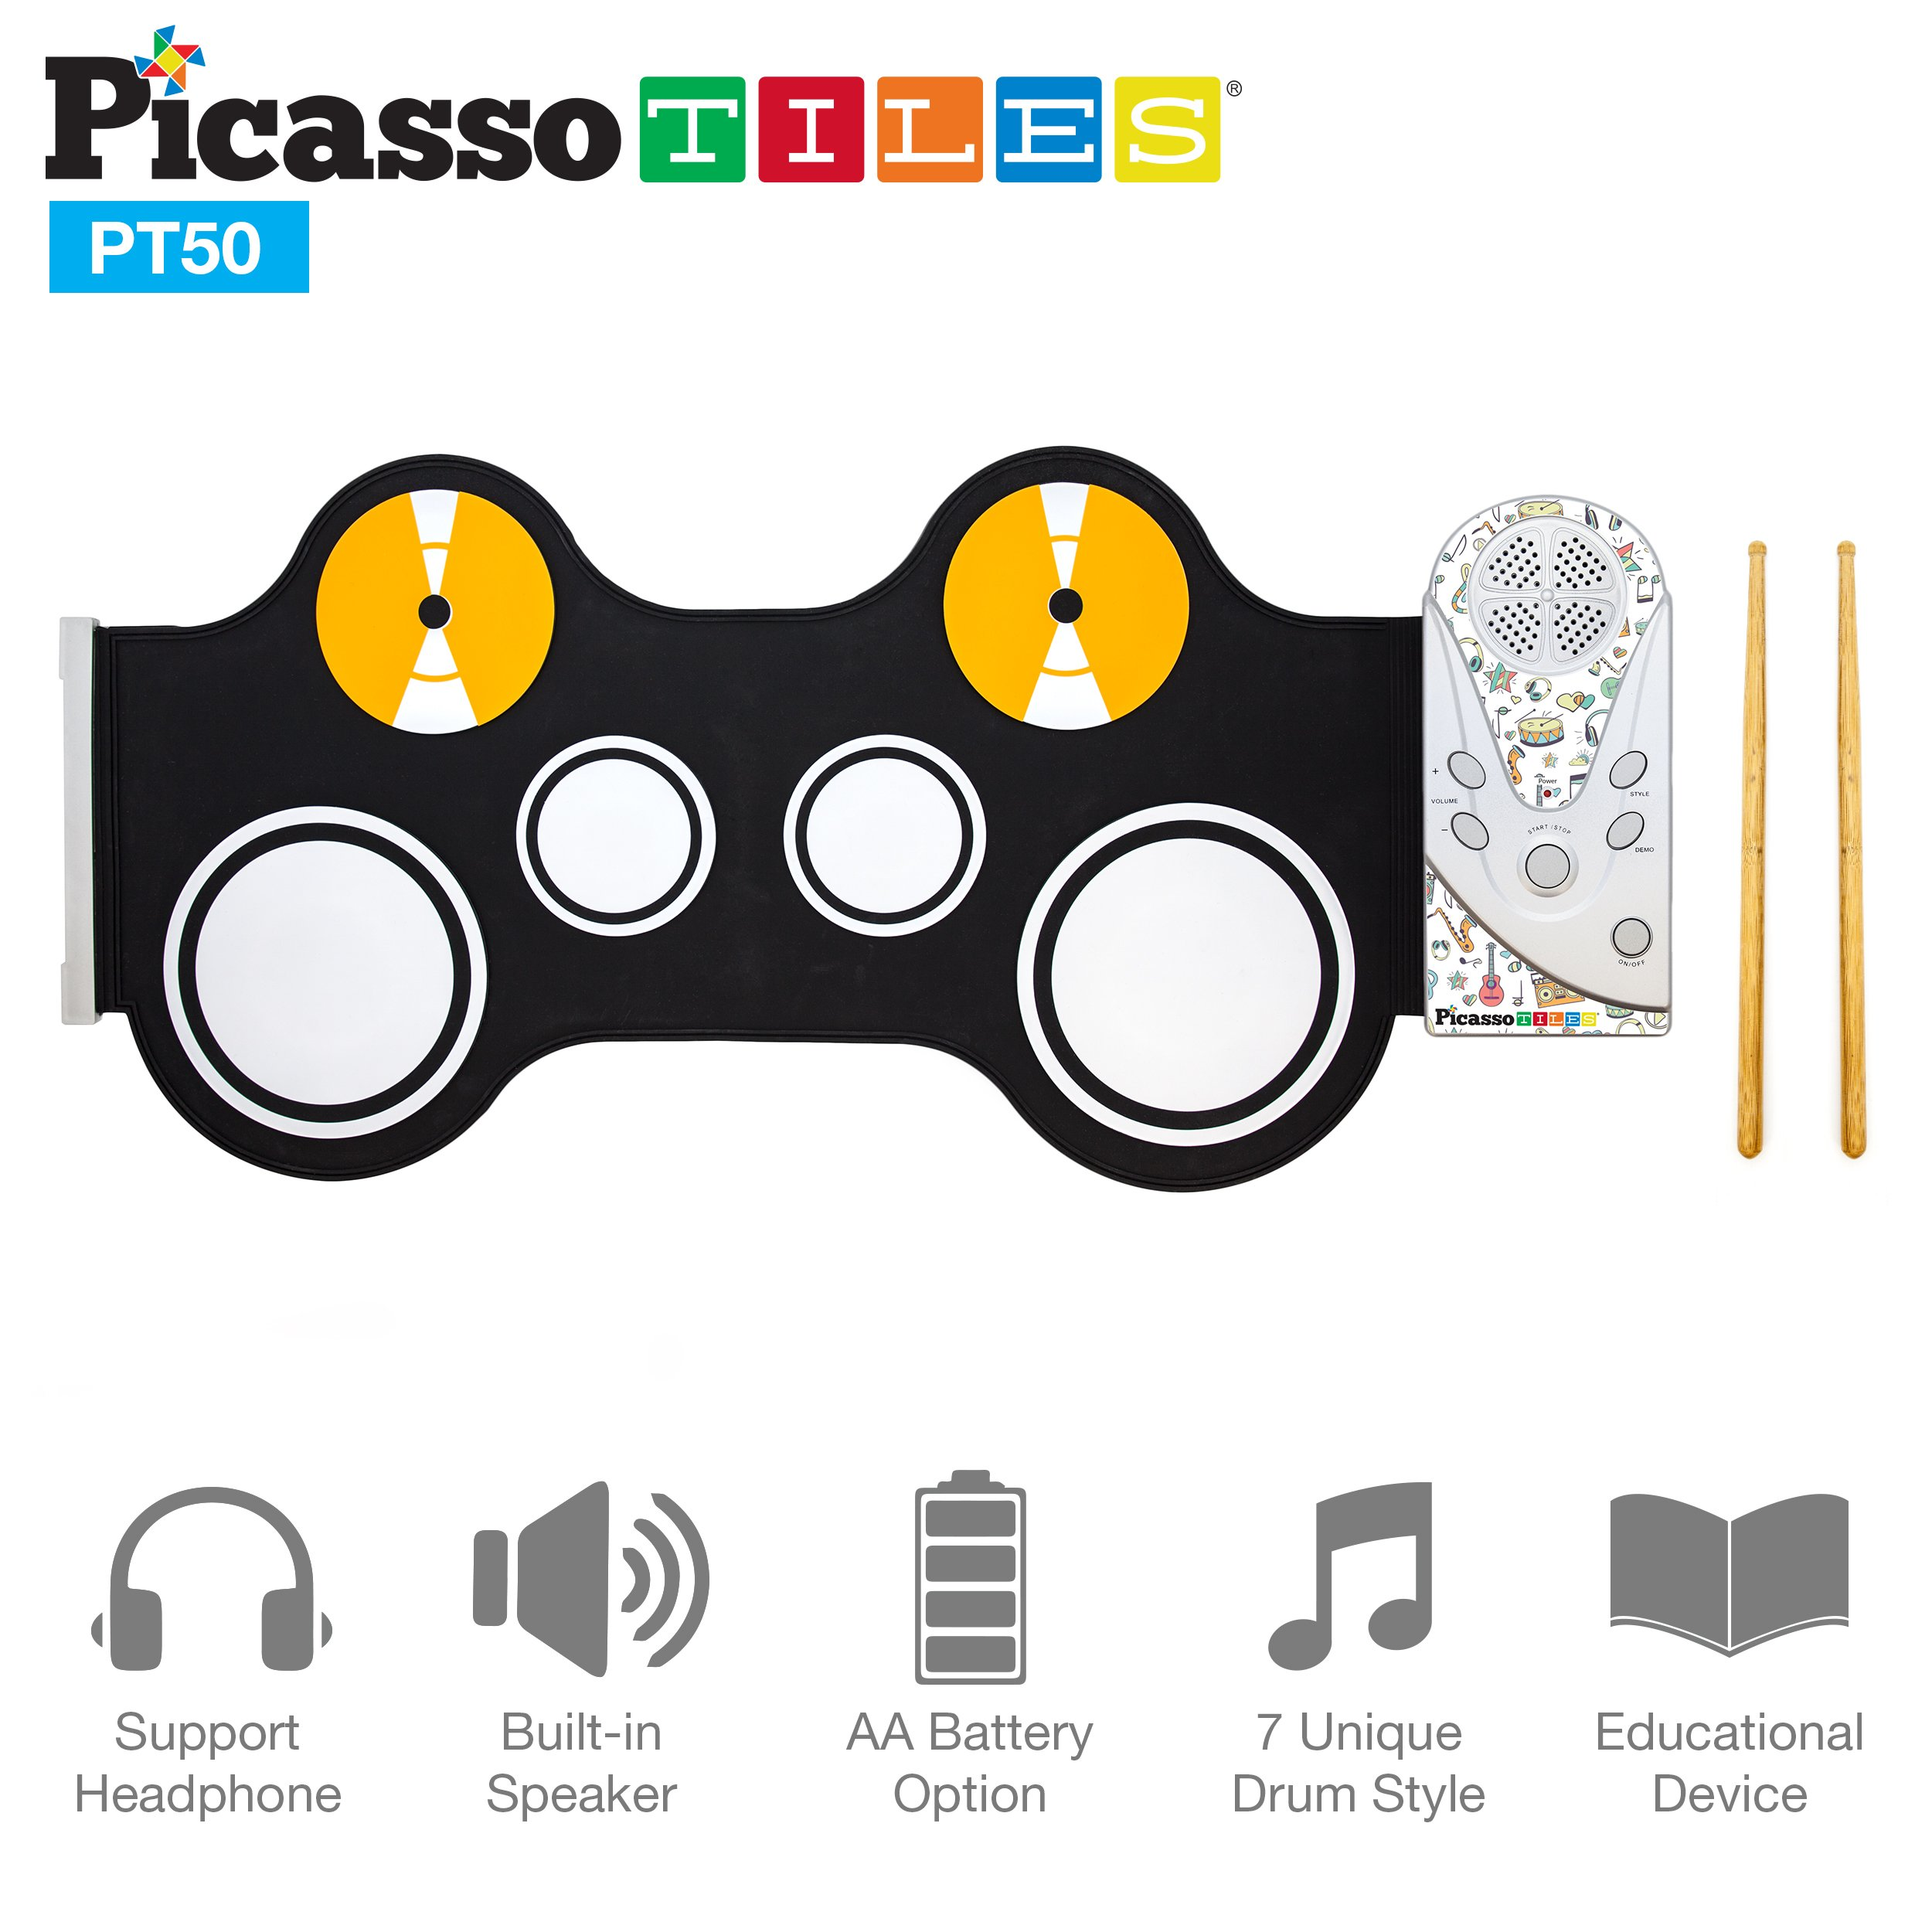 Picasso Tiles PT50 Portable Kid's Roll Up Drum, Educational Electronic Drum Set w/ 7 Different Drum Pads, Recording Feature, Headphone Jack, Build-in Speaker, Educational Demos for Toddlers & Kids by Picasso Tiles